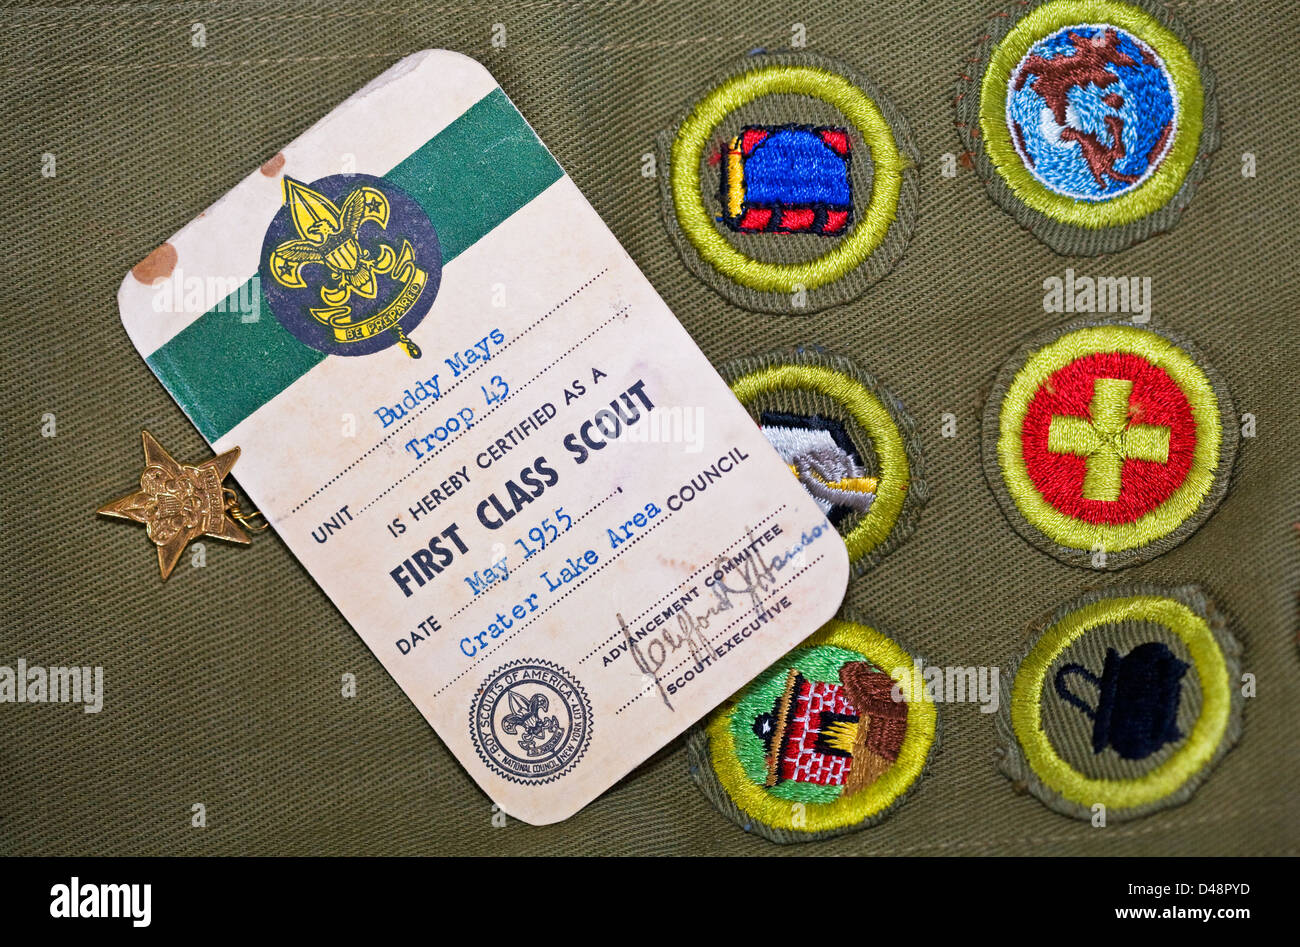 A Boy Scout sash with merit badges and First Class and Star Scout pins, from 1955. - Stock Image